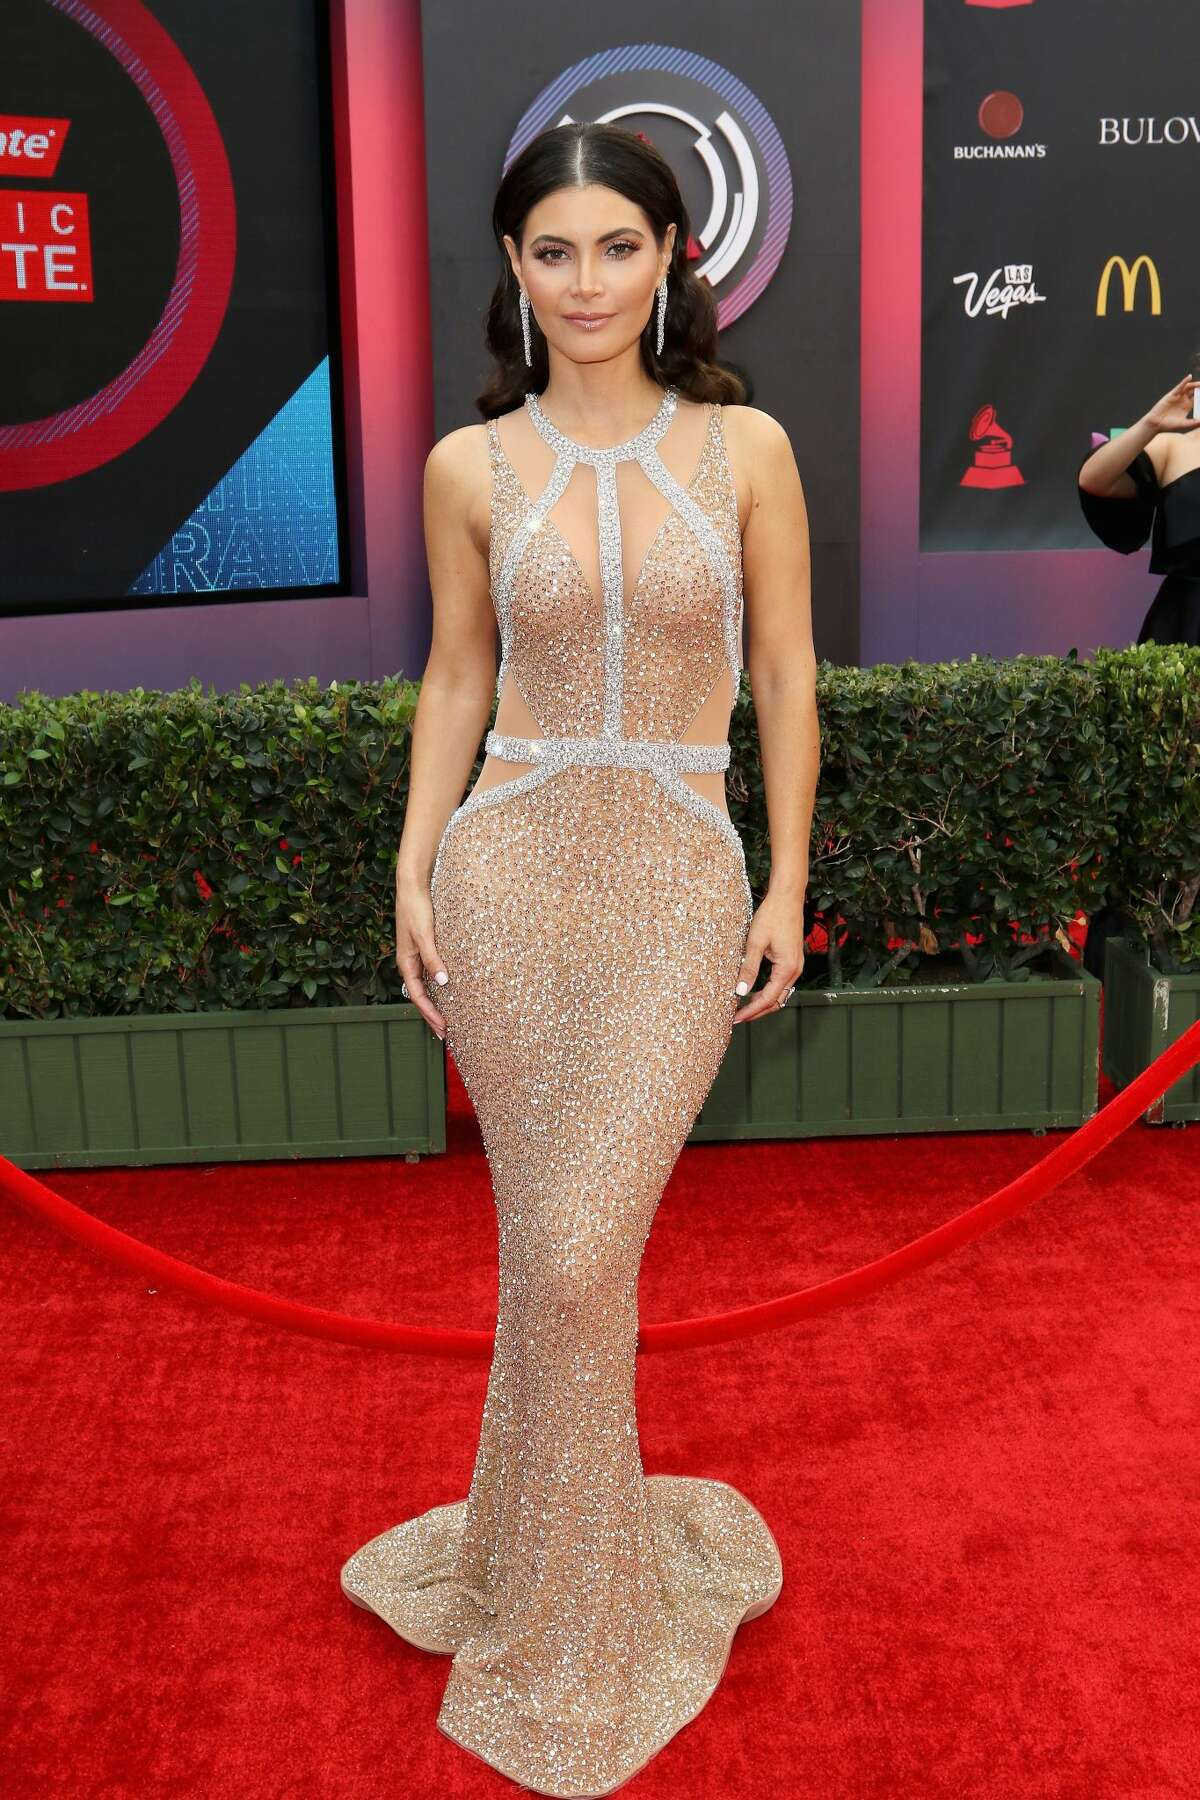 Chiqui Delgado's nude-color dress fit her small silhouette perfectly! If only all red carpet looks were this flawless.